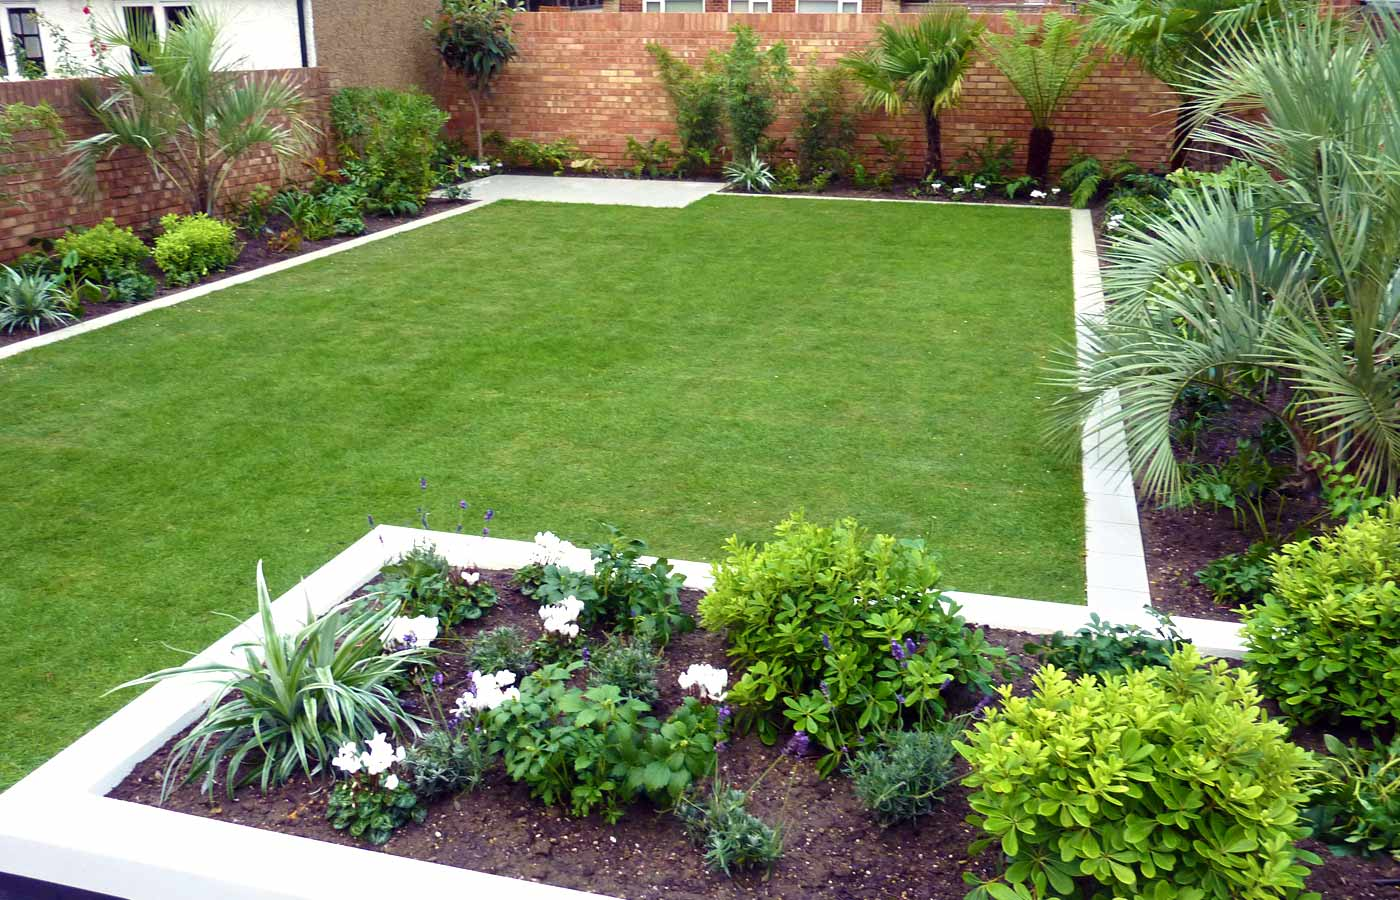 Keeping your garden weed free my decorative for Garden layout ideas